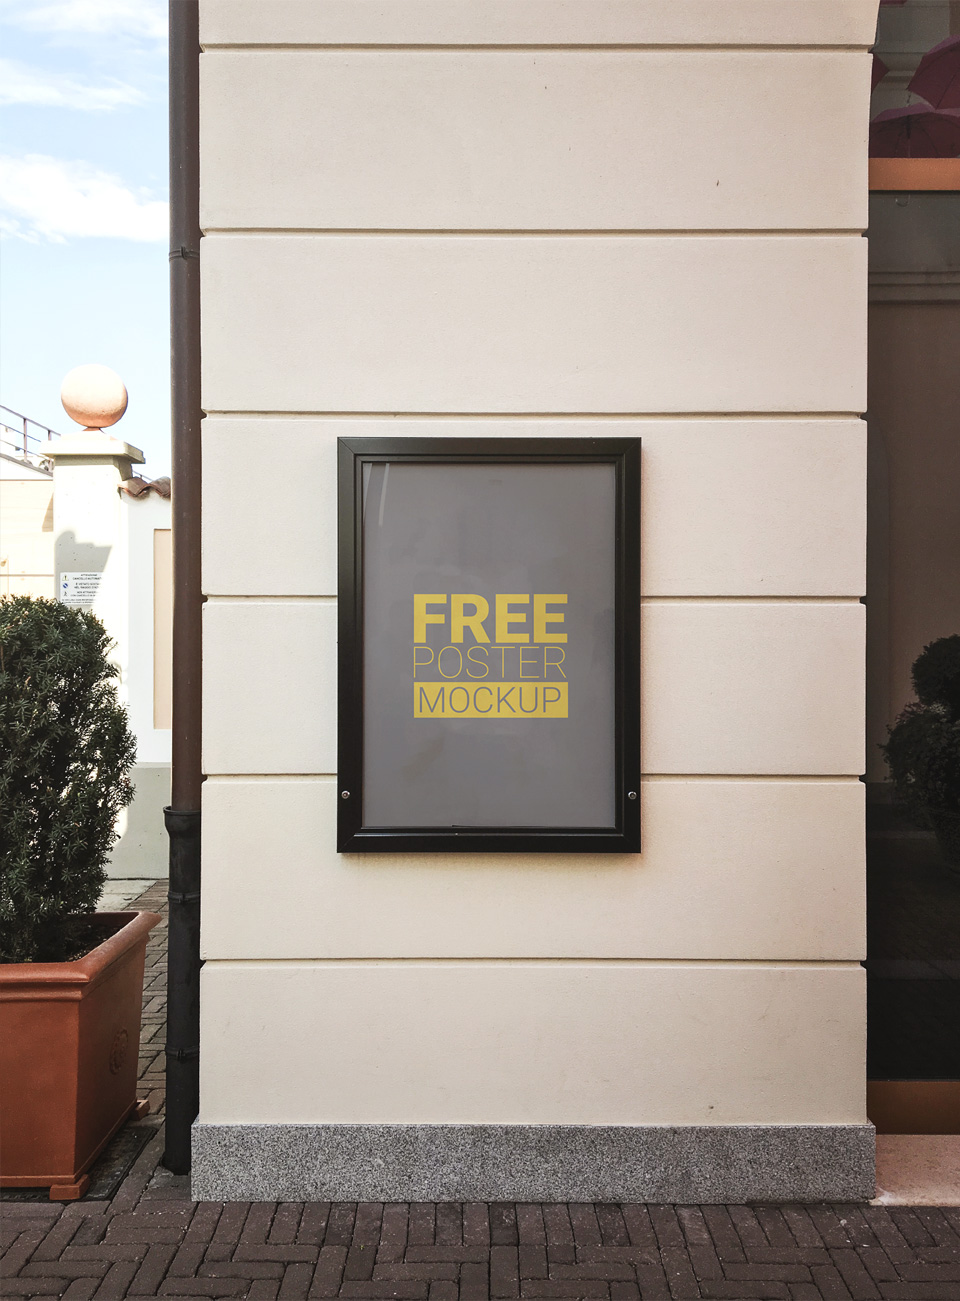 Outdoor Photorealistic Poster Mockup  mockup, free mockup, psd mockup, mockup psd, free psd, psd, download mockup, mockup download, photoshop mockup, mock-up, free mock-up, mock-up psd, mockup template, free mockup psd, presentation mockup, branding mockup, free psd mockup